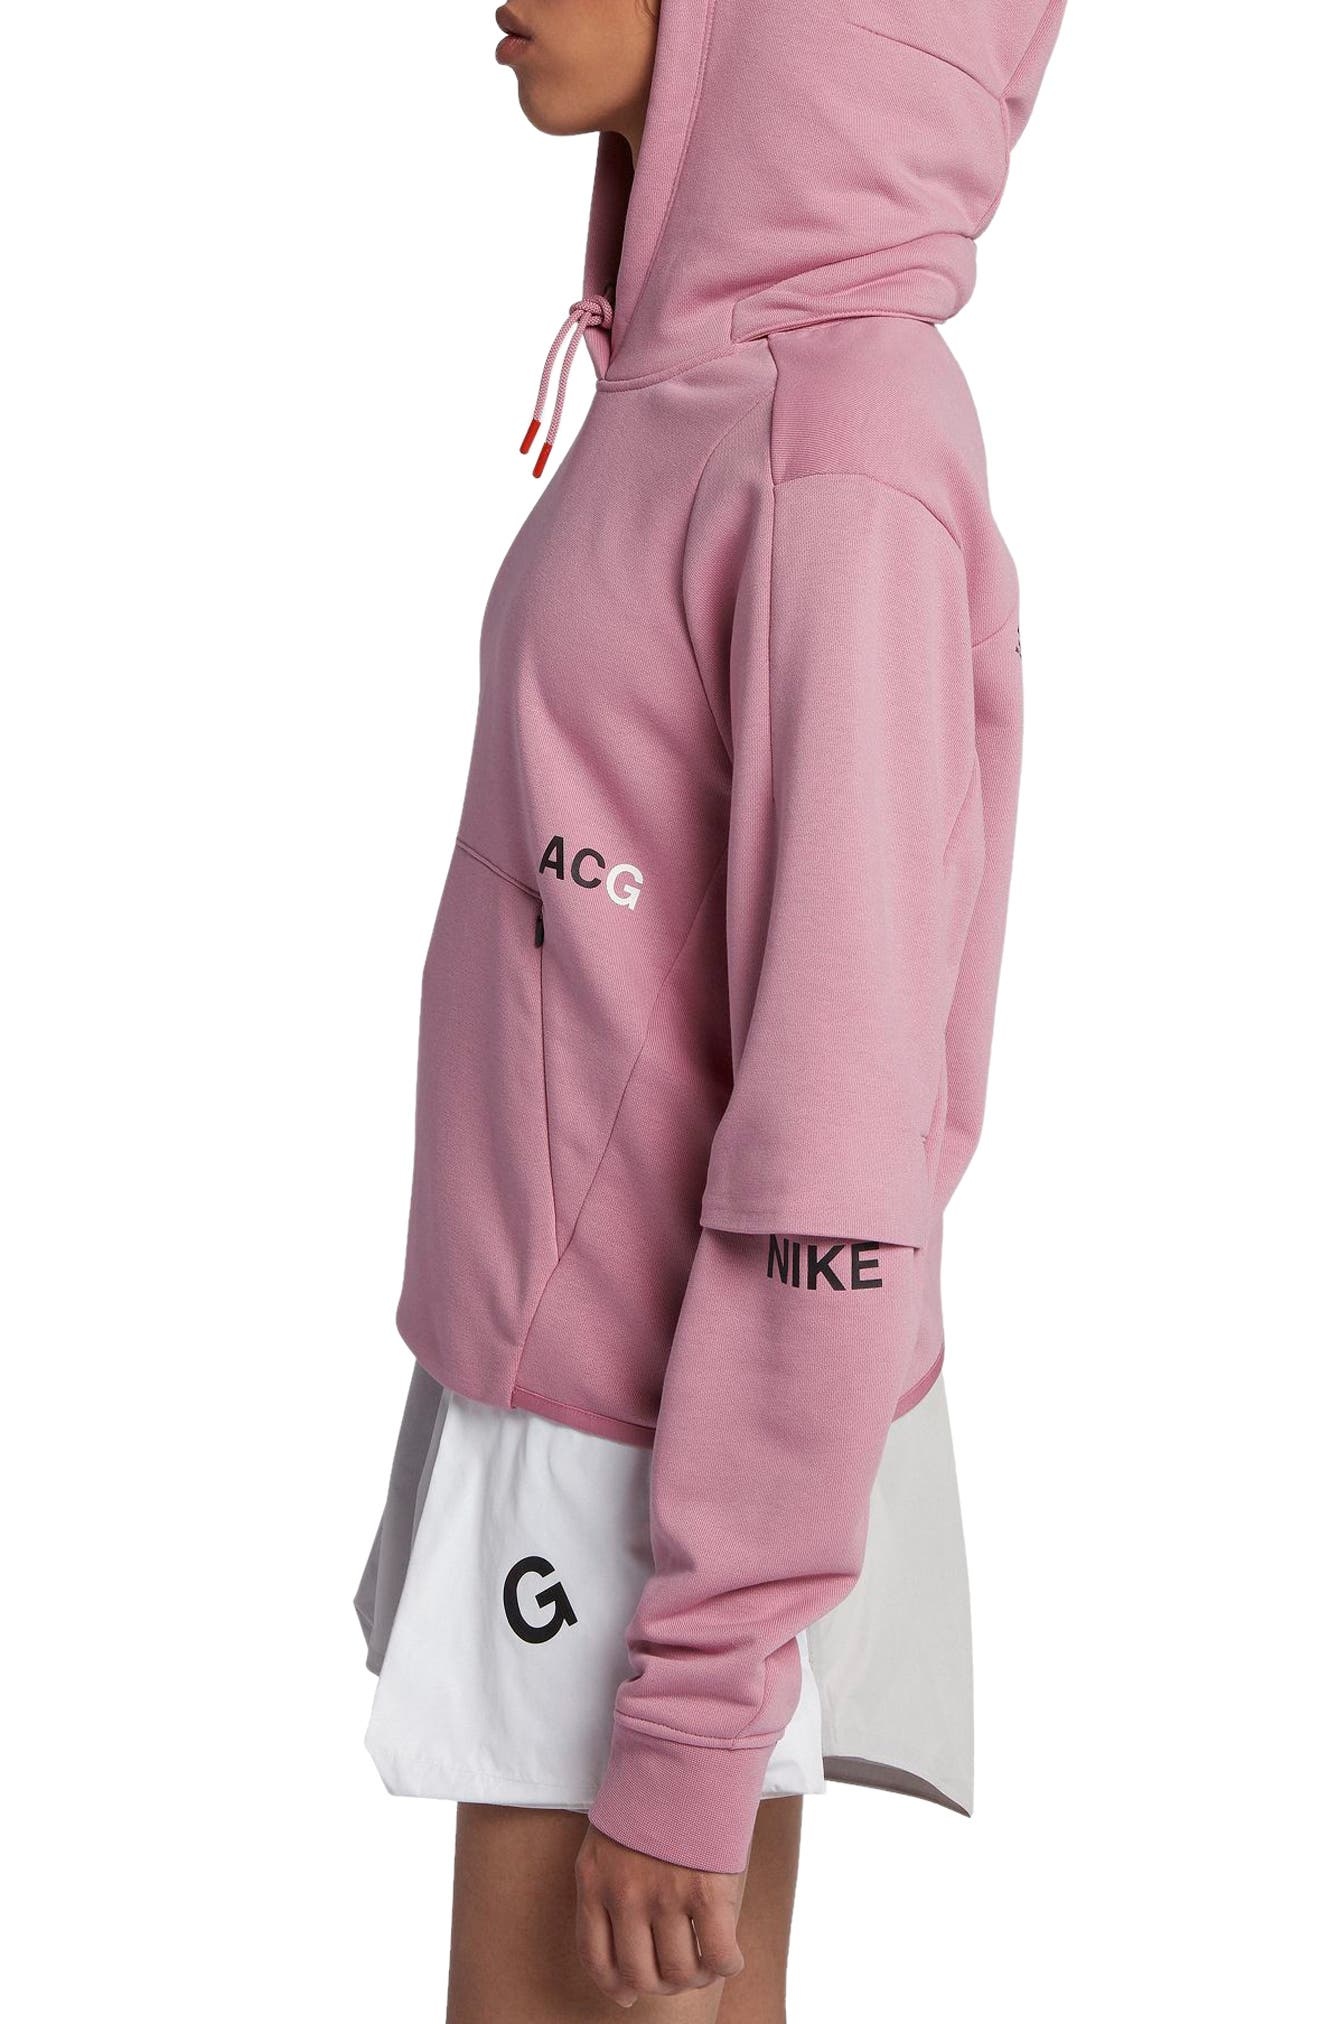 NikeLab ACG Women's Pullover Hoodie,                             Alternate thumbnail 9, color,